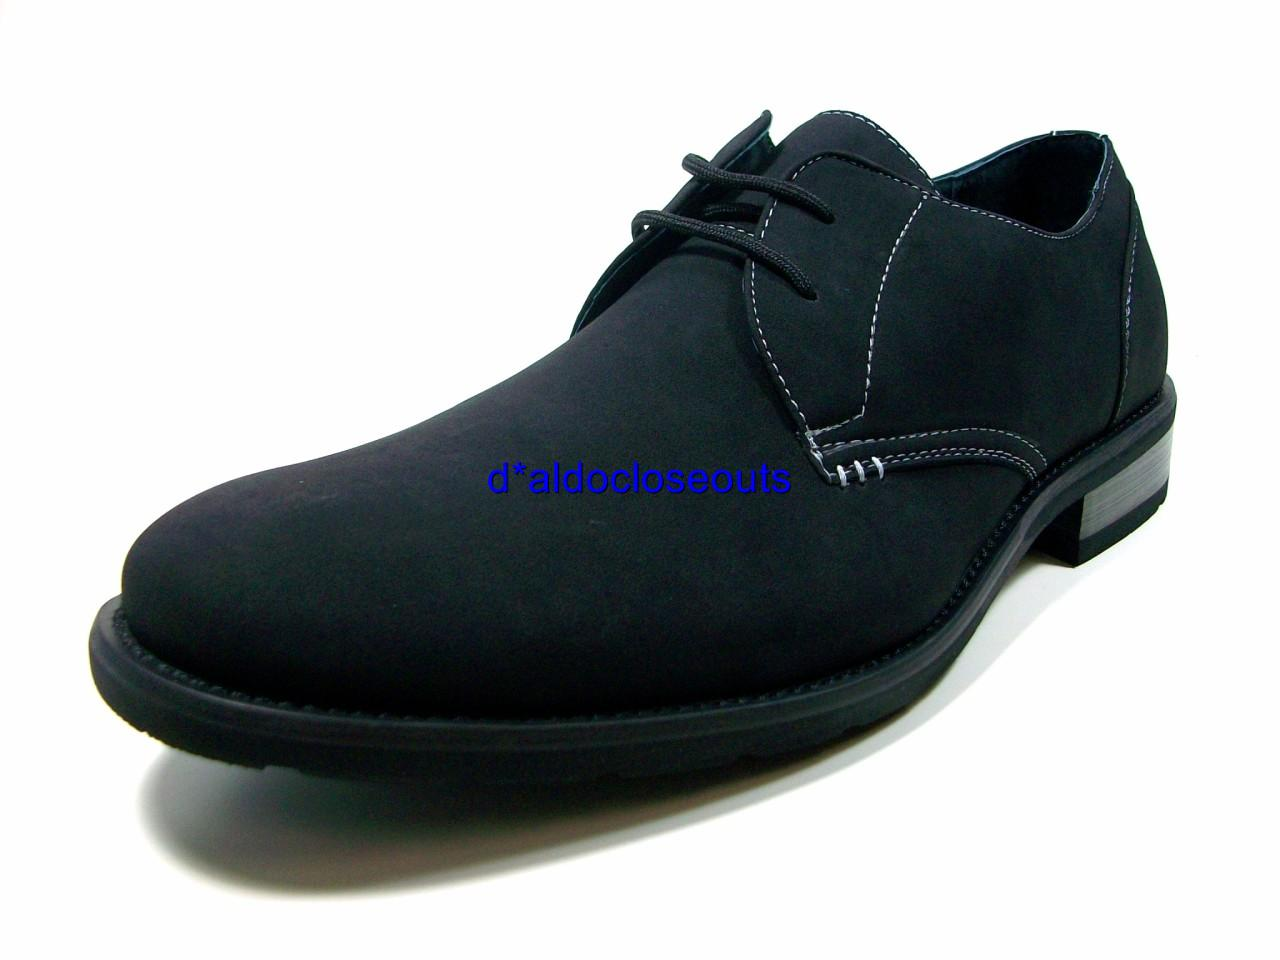 d aldo mens black oxford dress casual shoes lace up